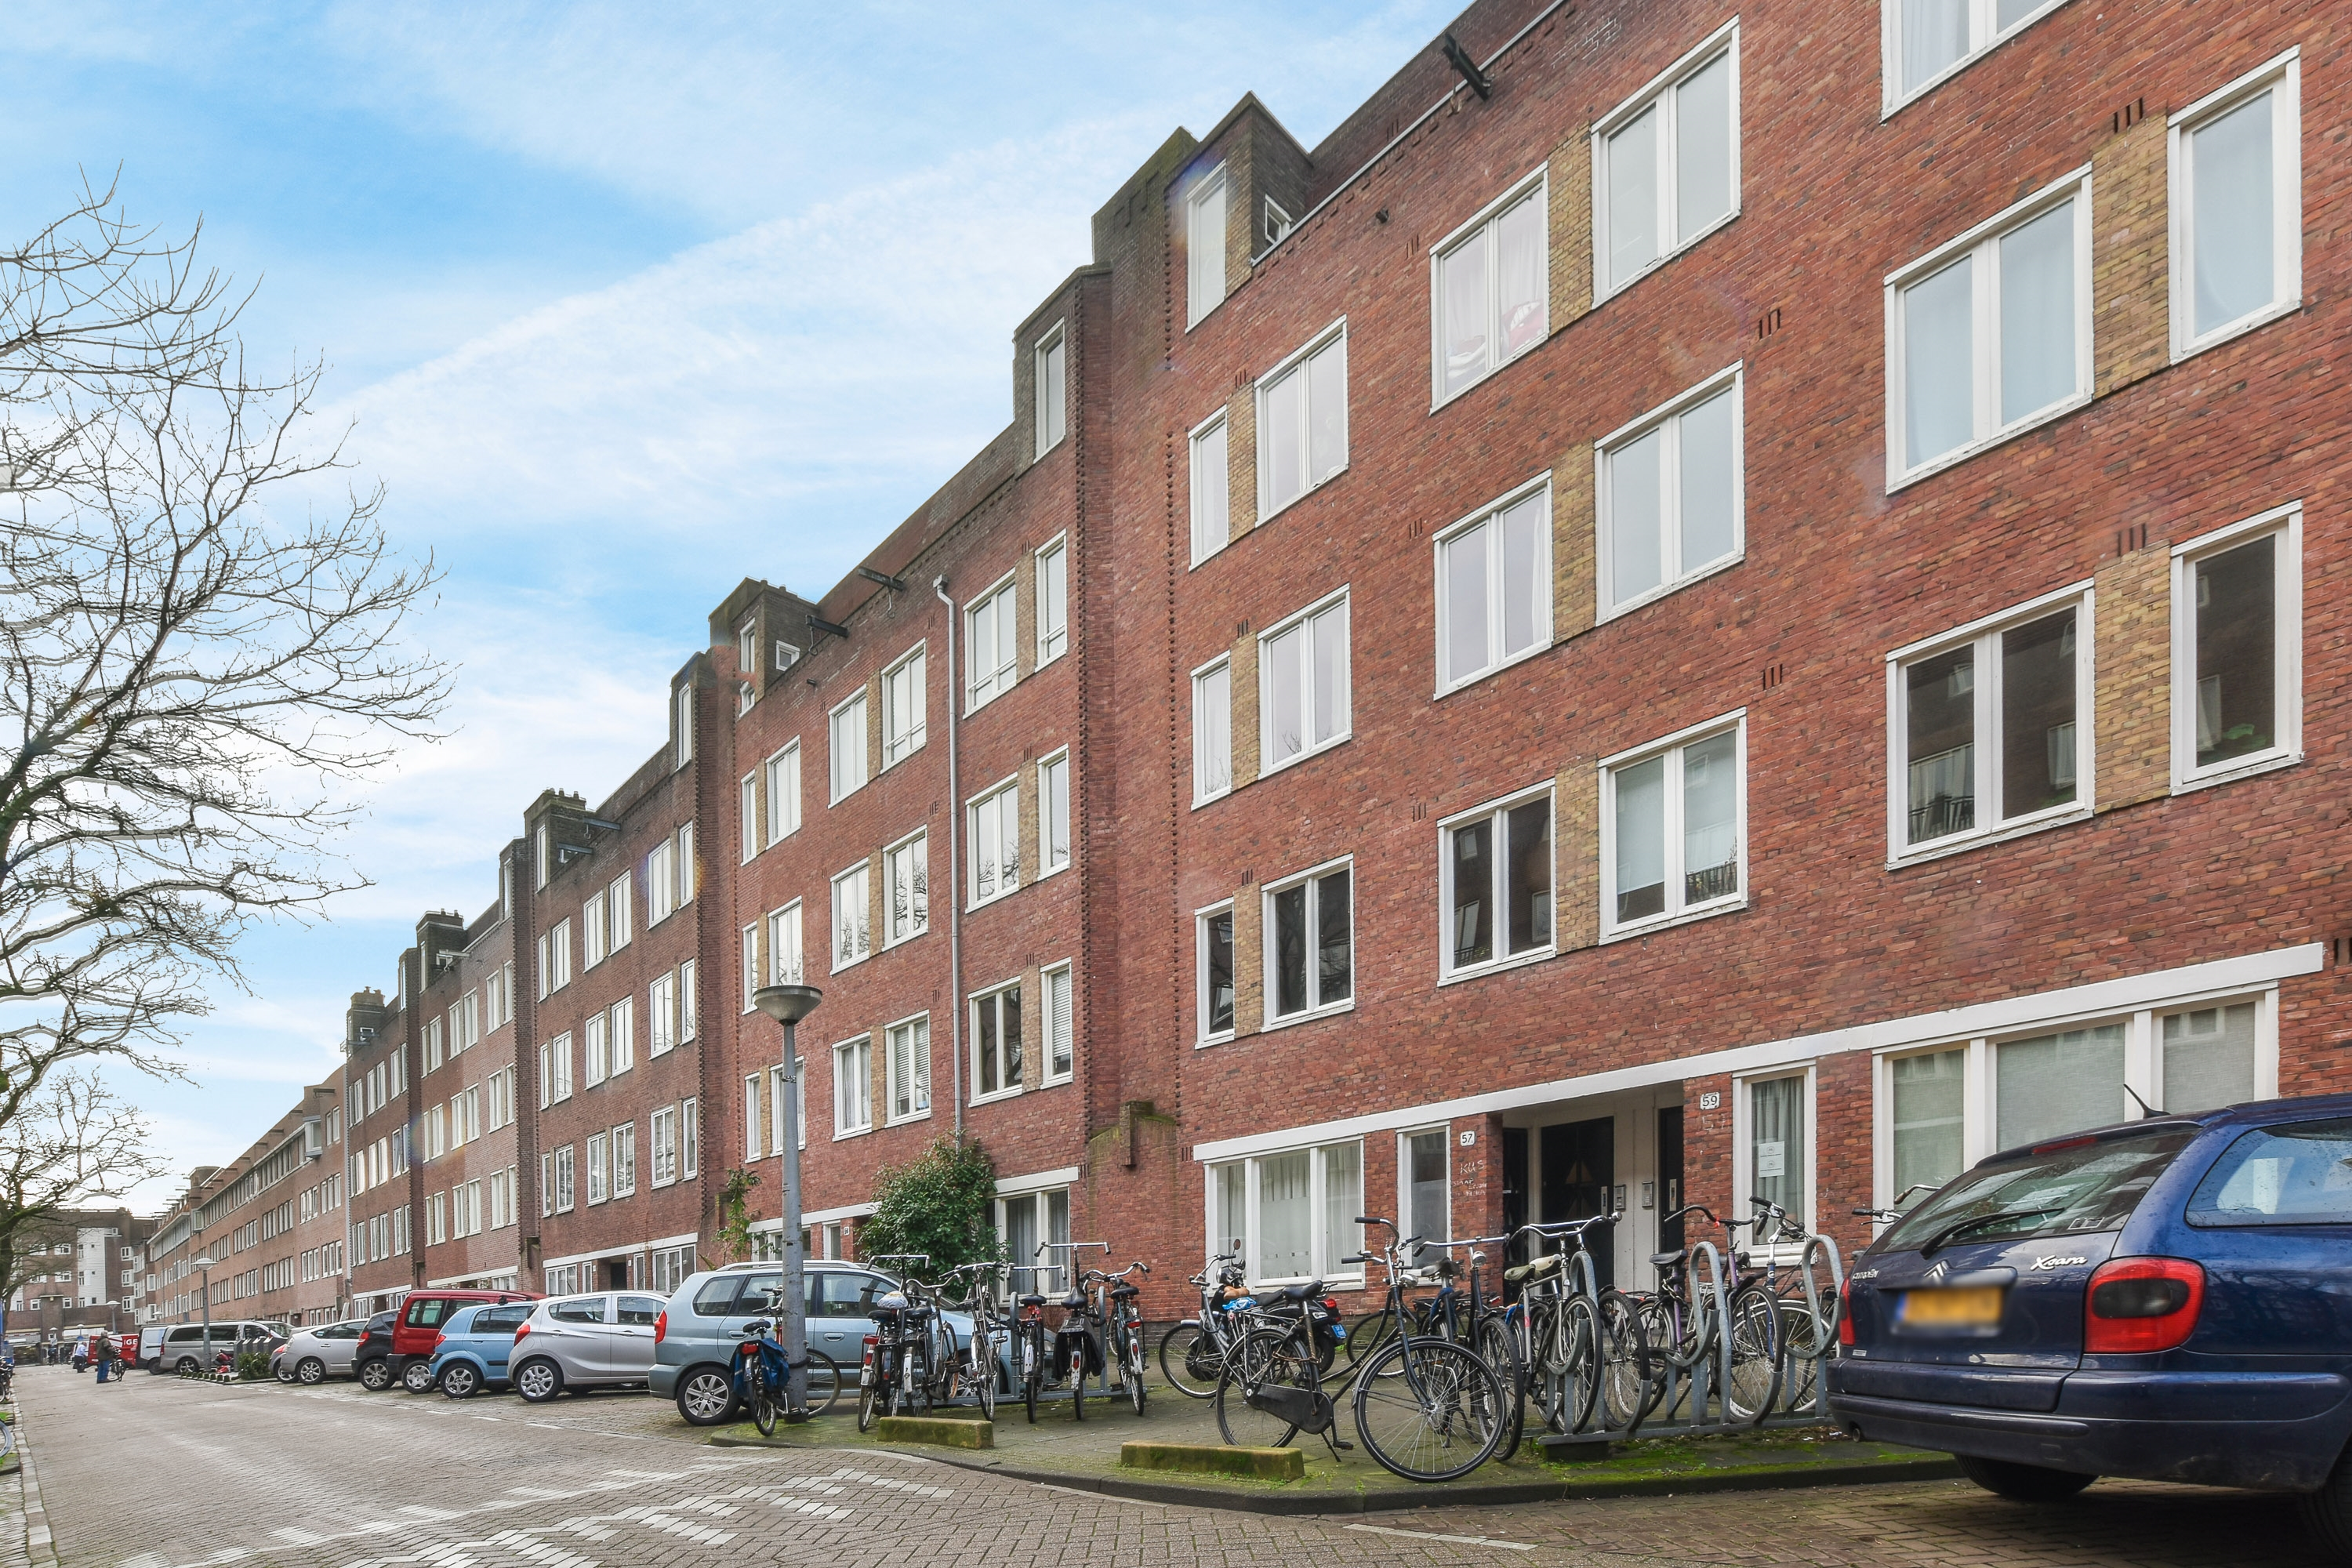 John Franklinstraat 59